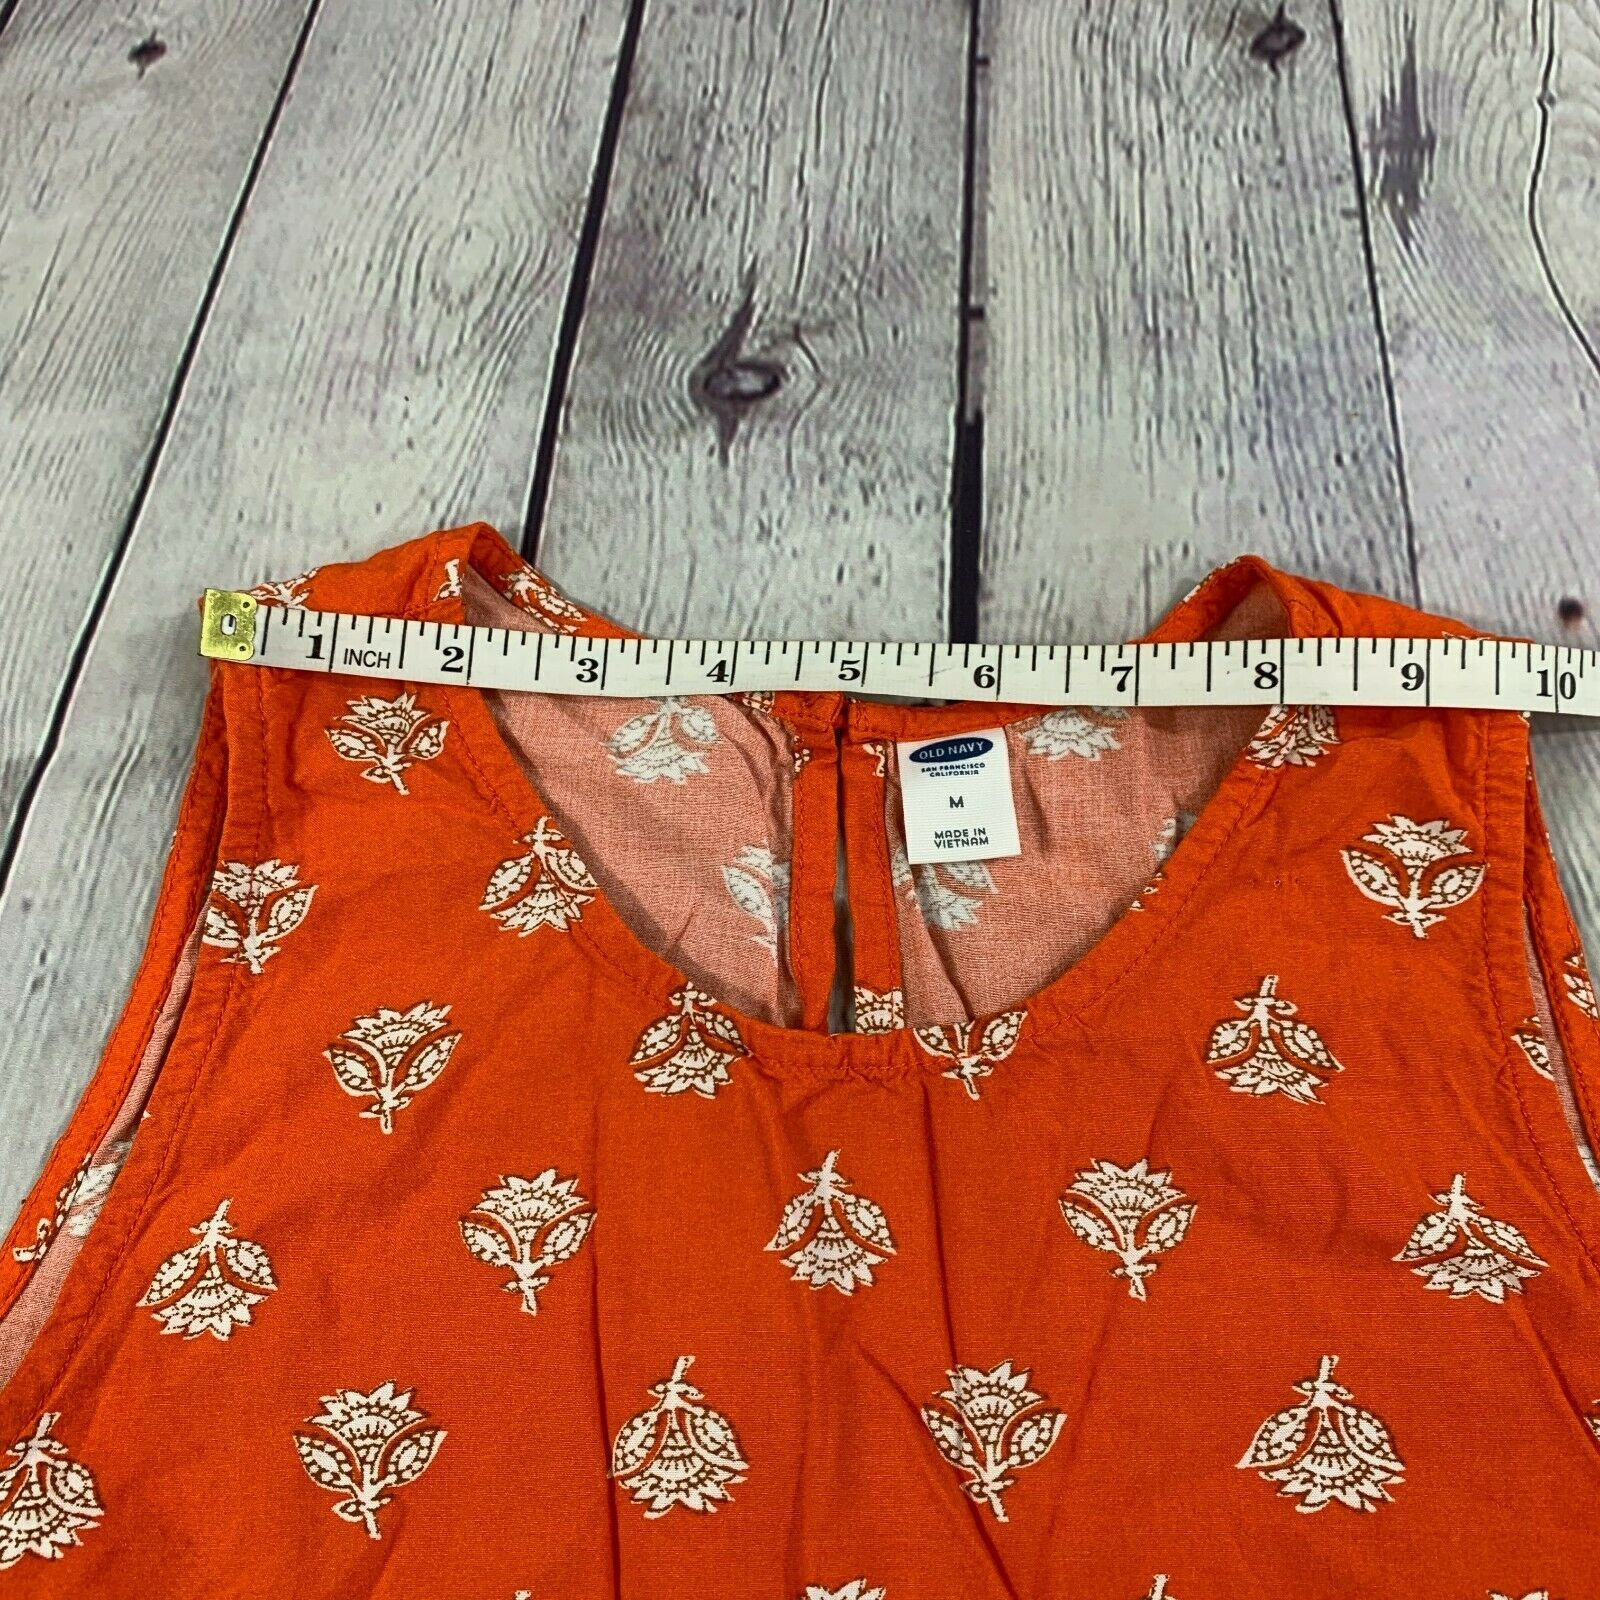 Old Navy Women's Orange Floral Print Short Dress Casual Sleeveless Size M